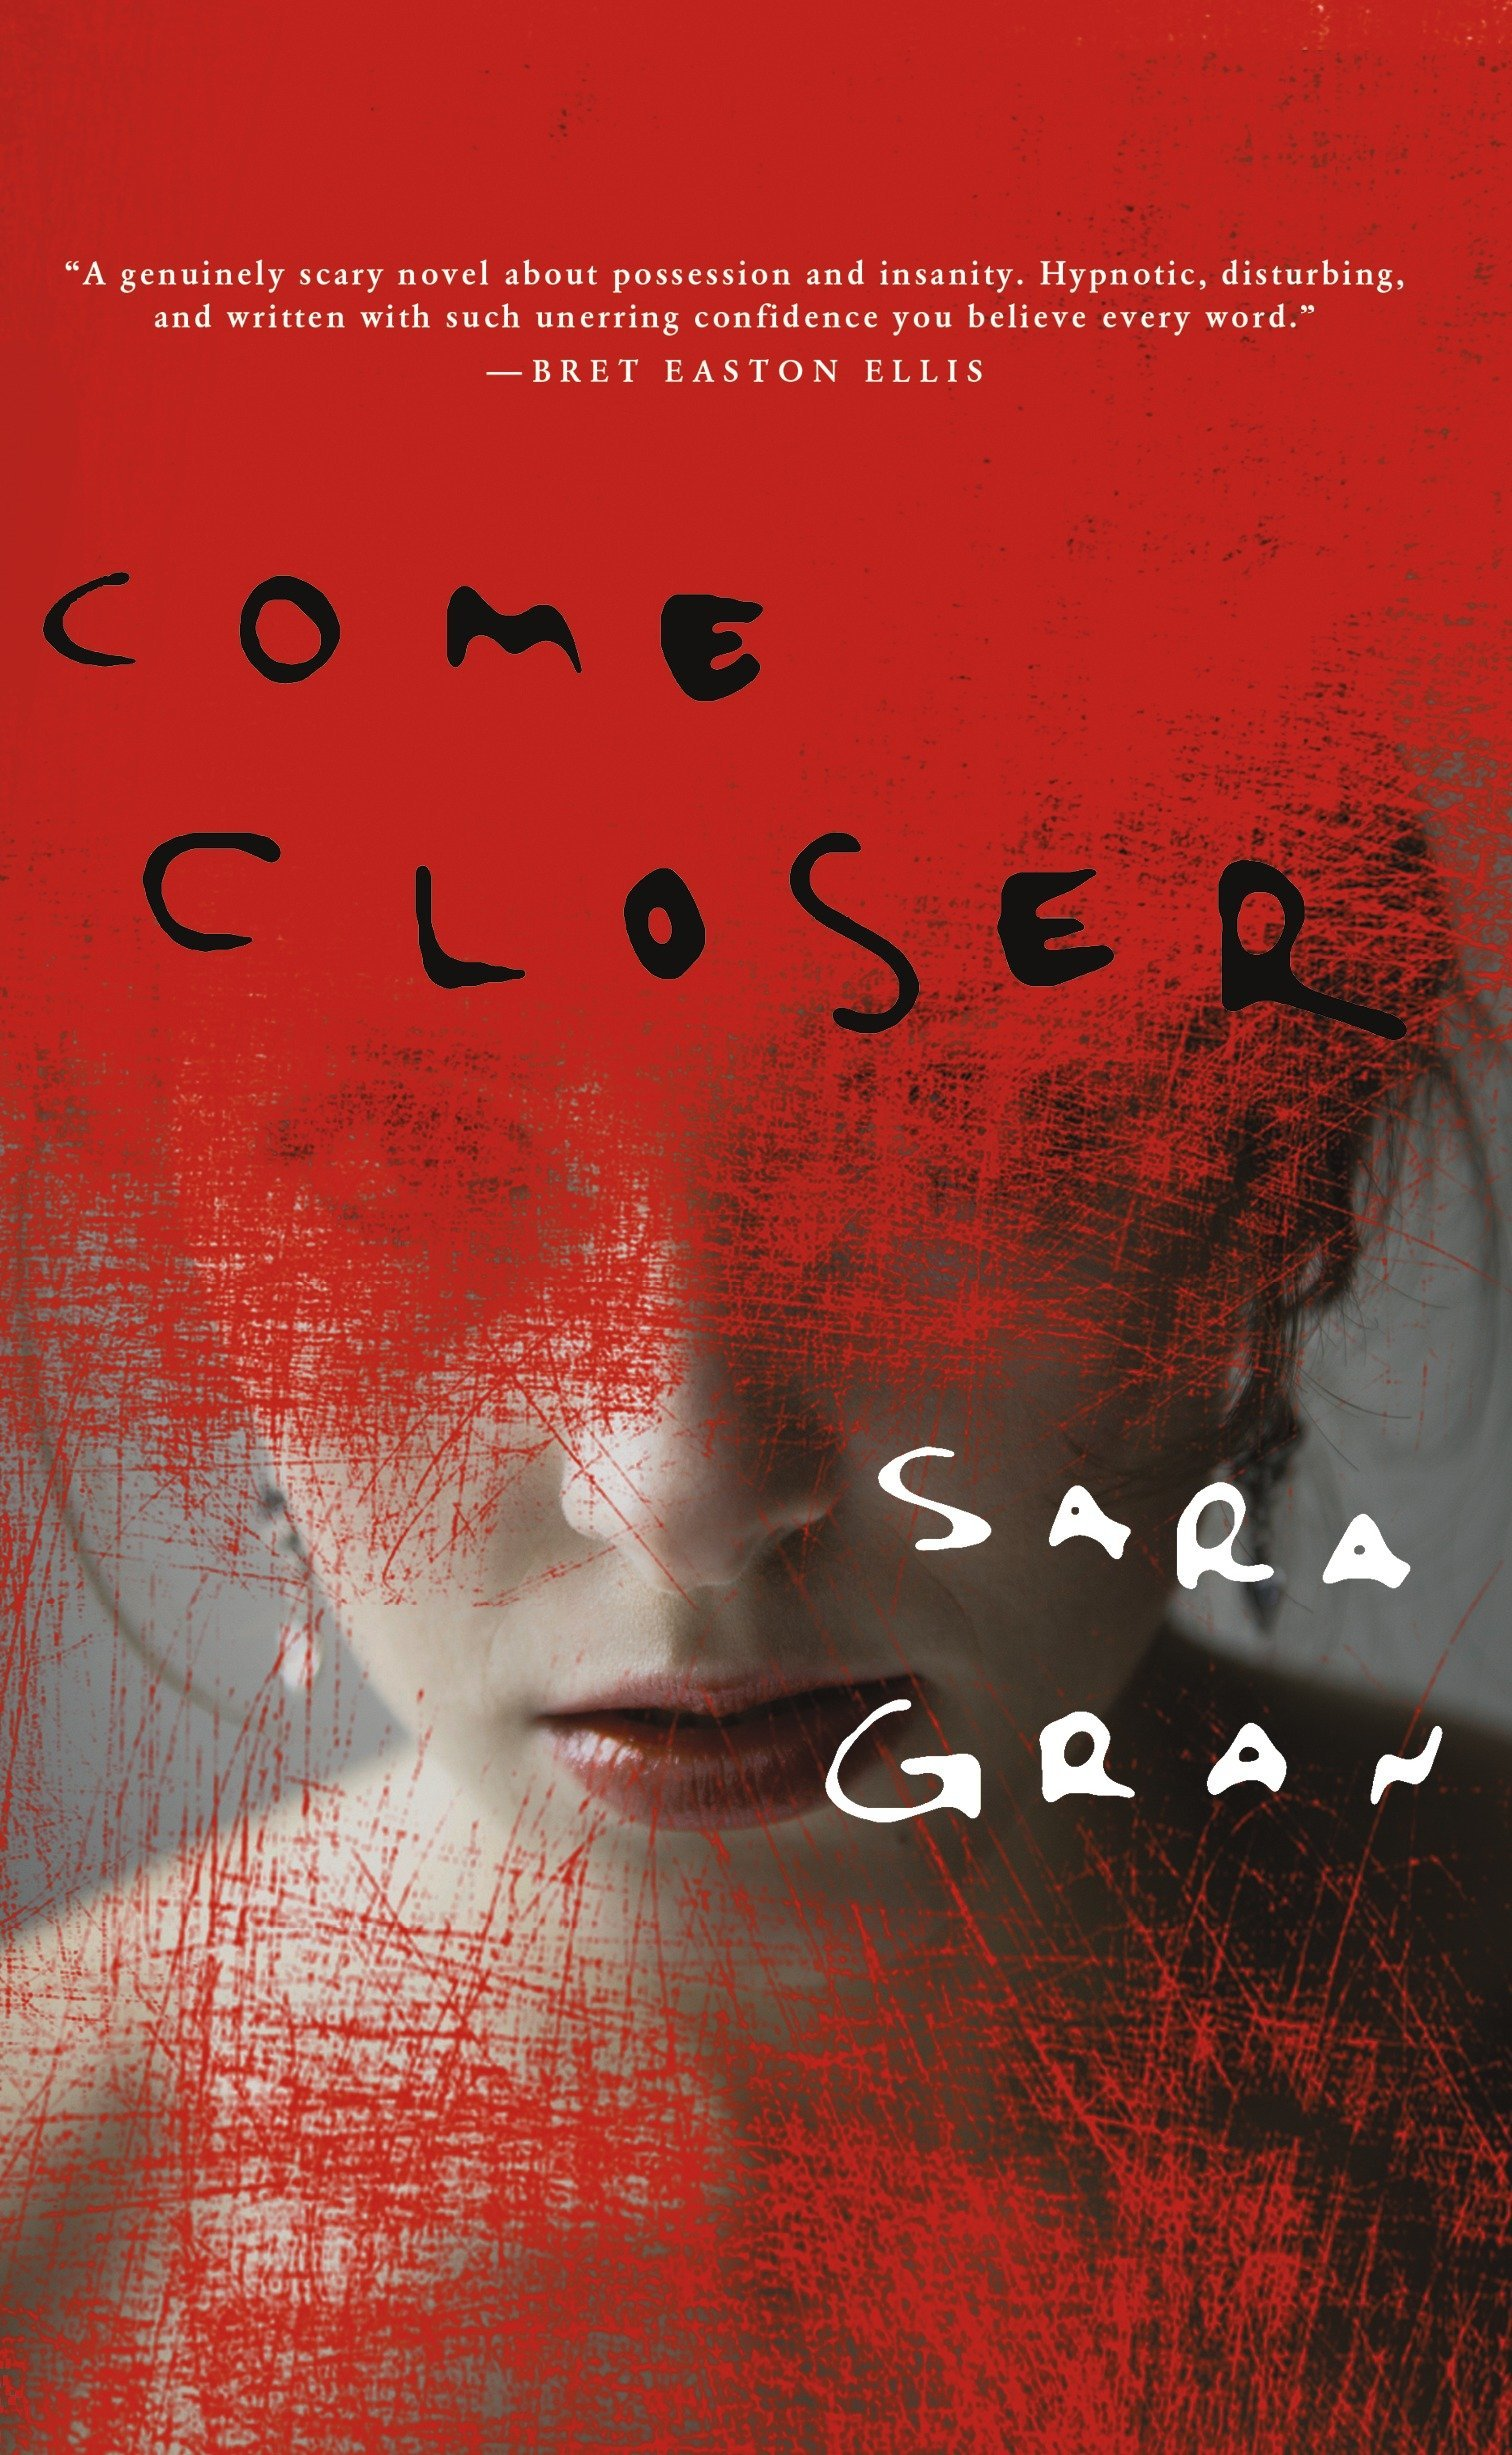 Image result for Come Closer sara gran